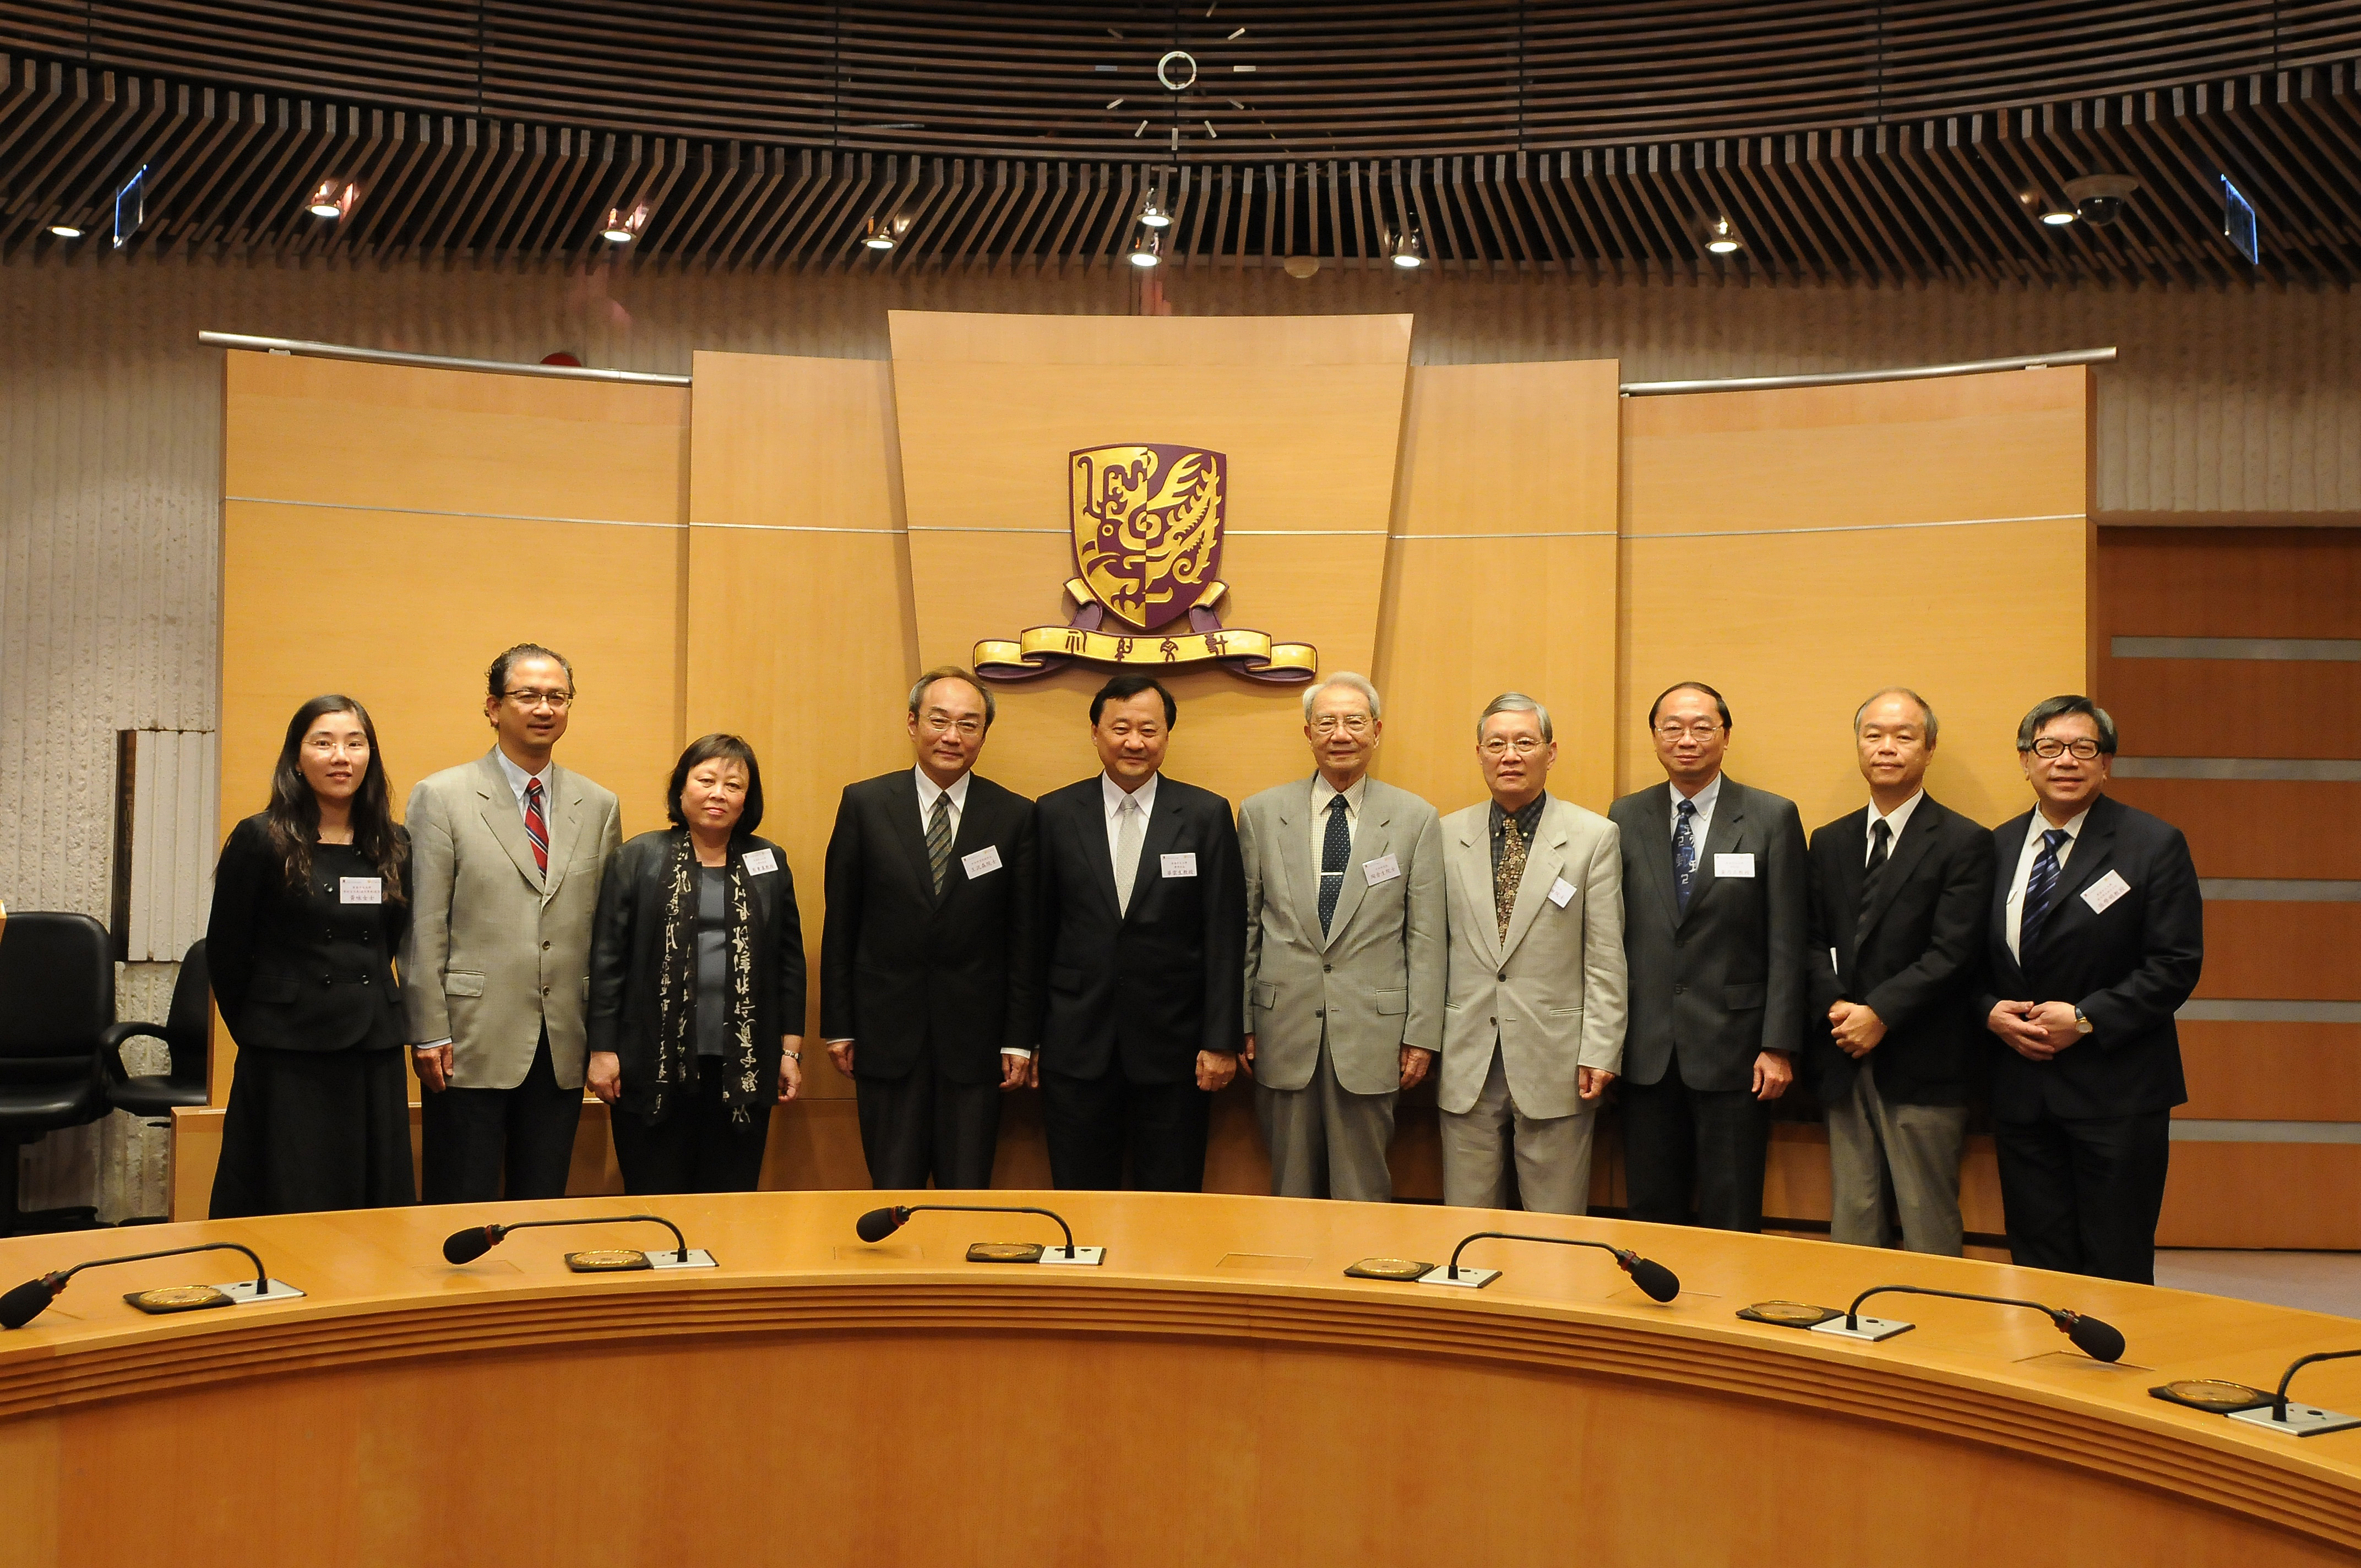 Group photo of Professor Benjamin Wah, Acting Vice-Chancellor, CUHK (5th left) and the Academicians of Academia Sinica